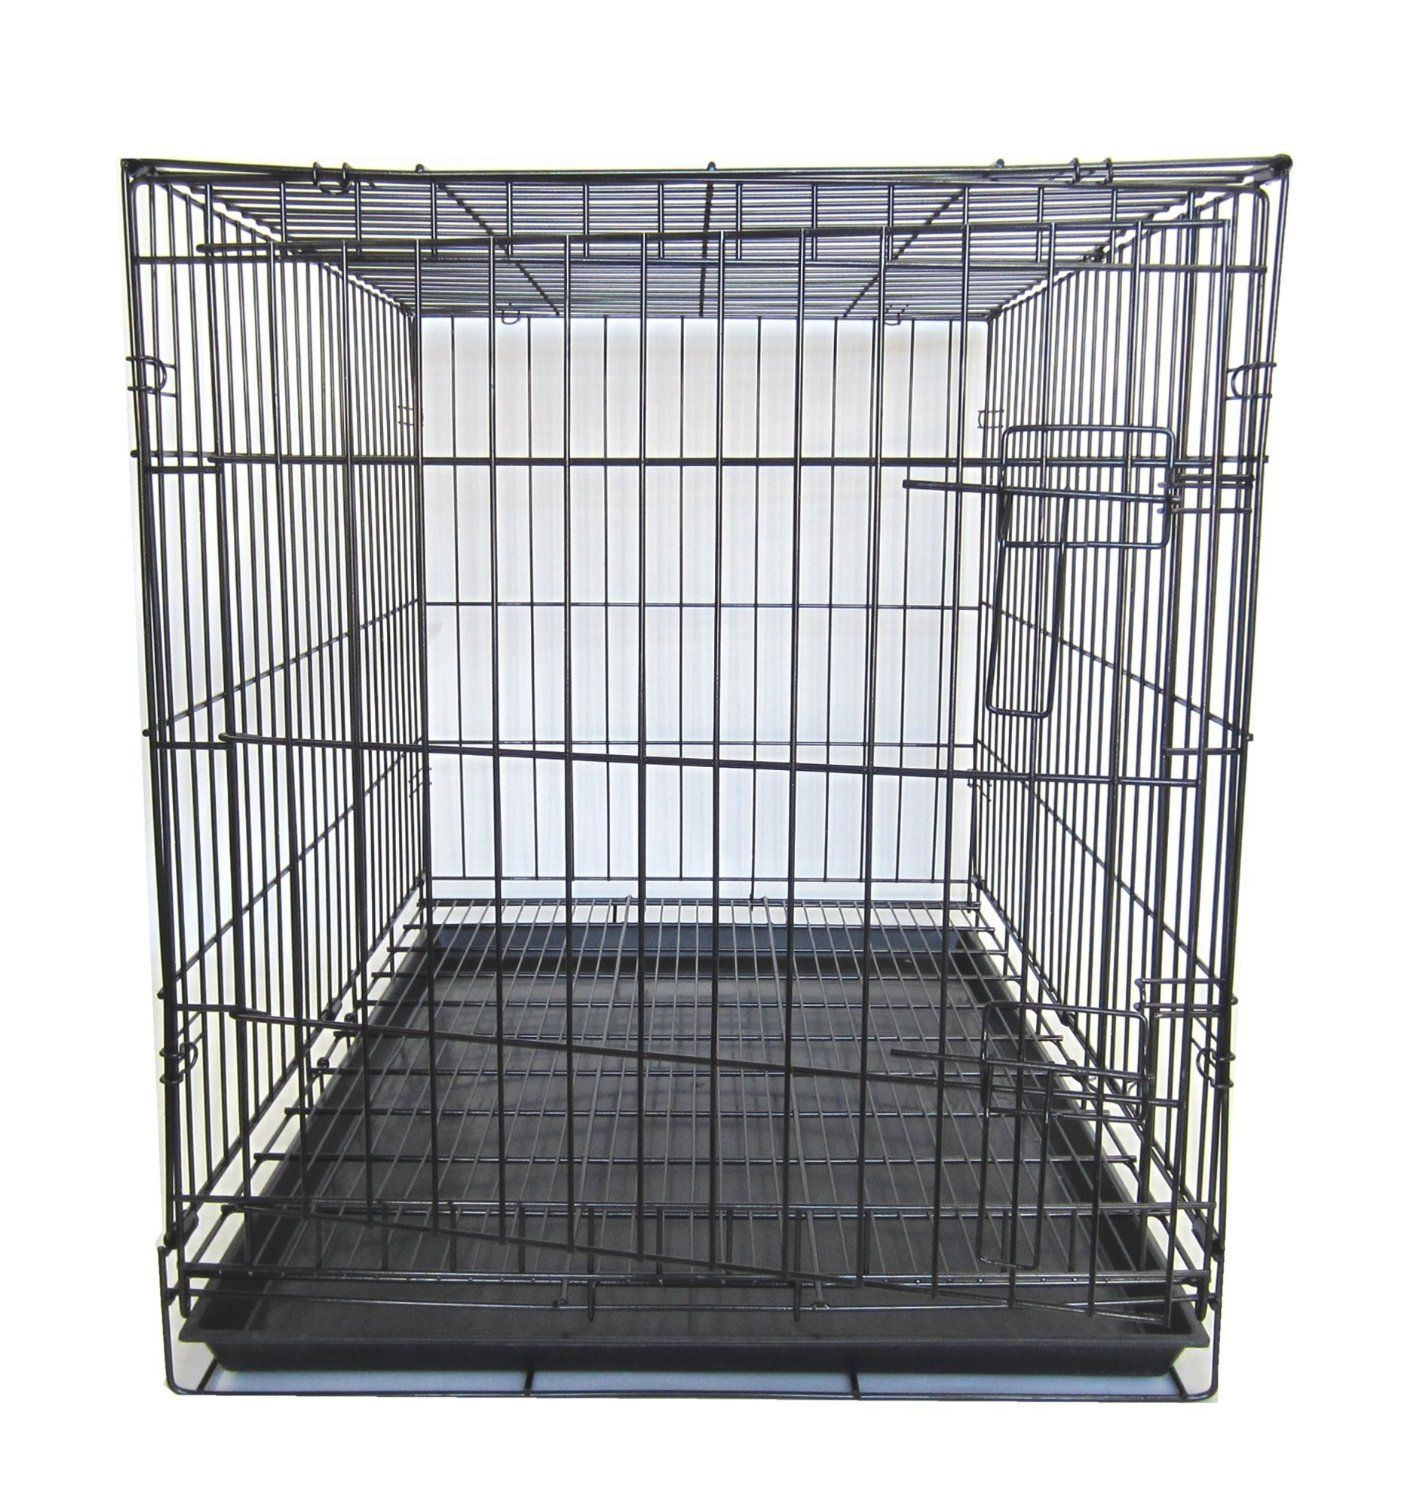 Yml 42 Inch Dog Kennel Cage With Wire Bottom Grate And Plastic Tray Black See This Awesome Image Dog Kennels Cheap Dog Kennels Large Dog Crate Dog Kennel